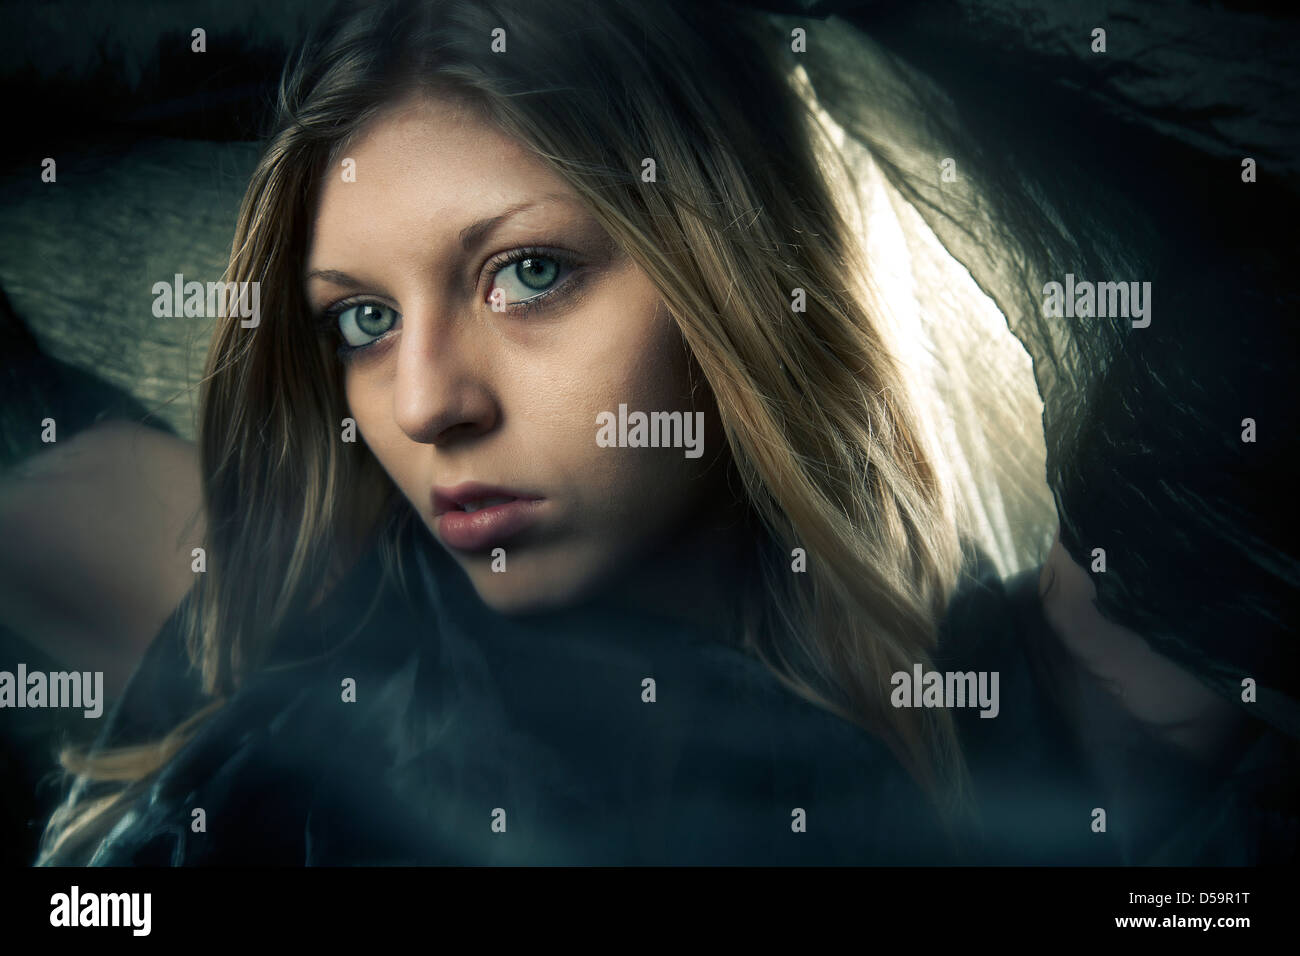 Blond woman girl scarf over head fashion portrait - Stock Image